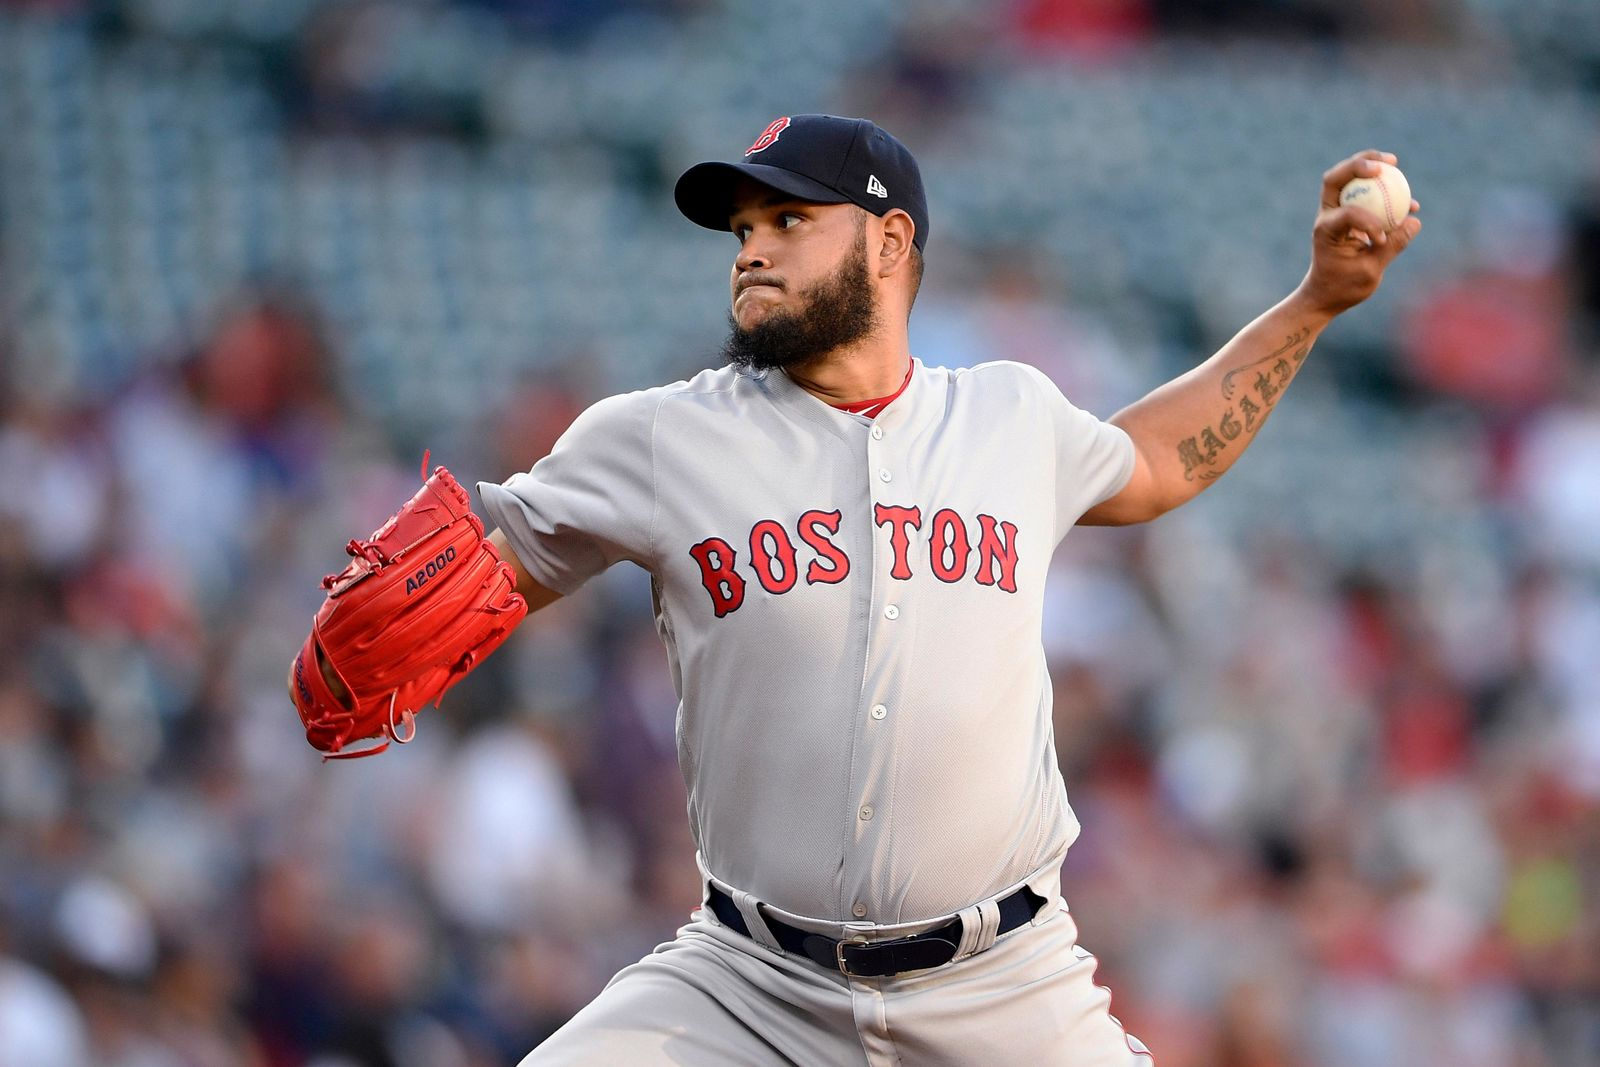 Boston Red Sox starting pitcher Eduardo Rodriguez delivers a pitch during the first inning of the team's baseball game against the Baltimore Orioles, Friday, June 14, 2019, in Baltimore. (AP Photo/Nick Wass)